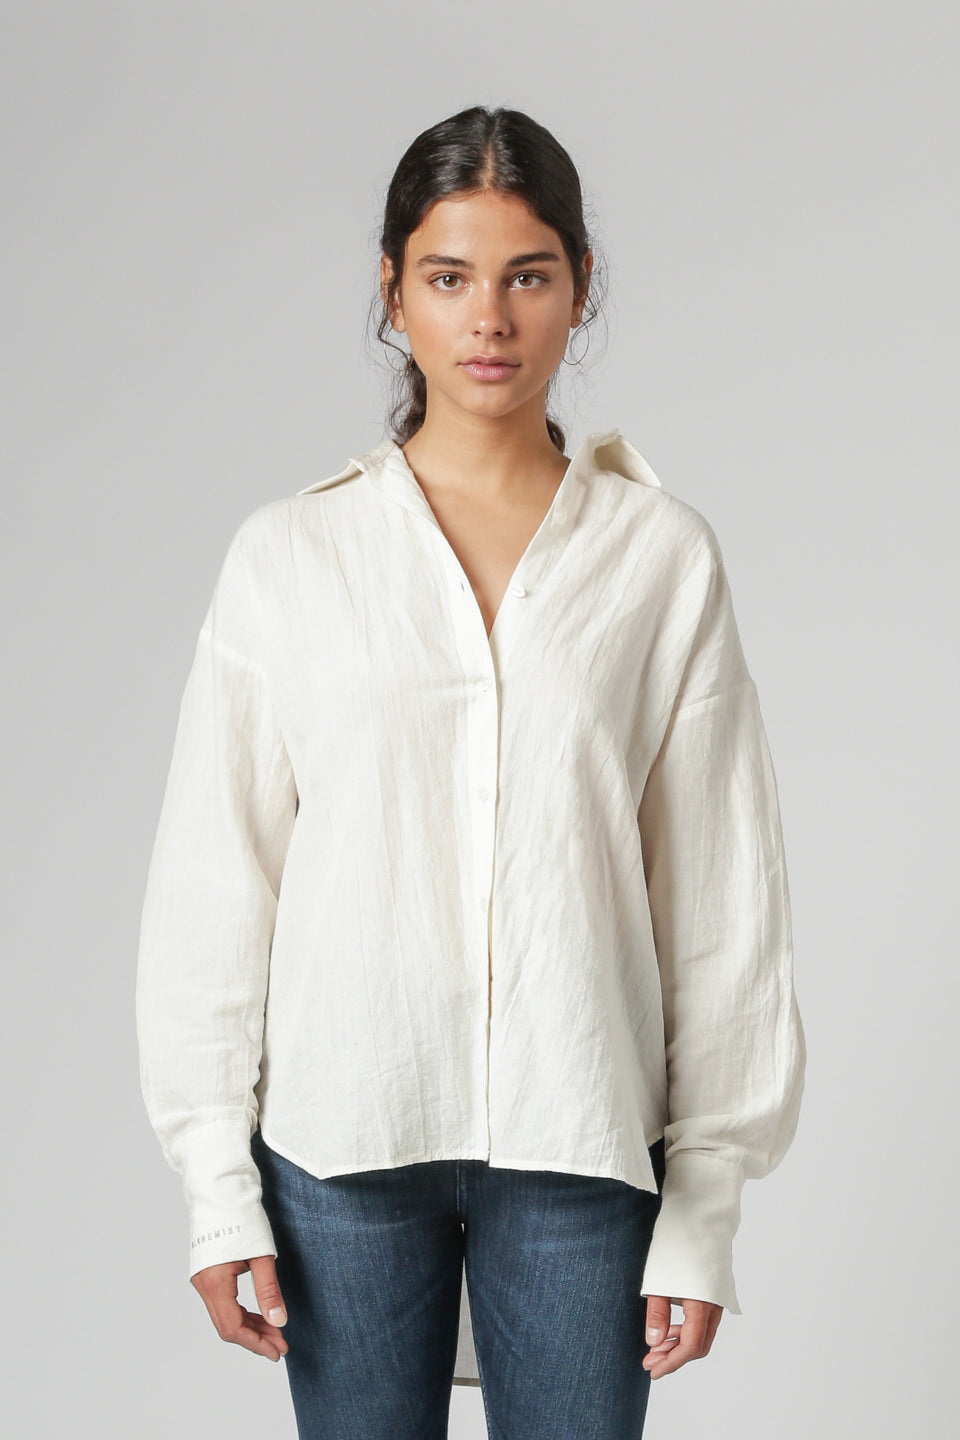 The Overnighter Shirt in Natural